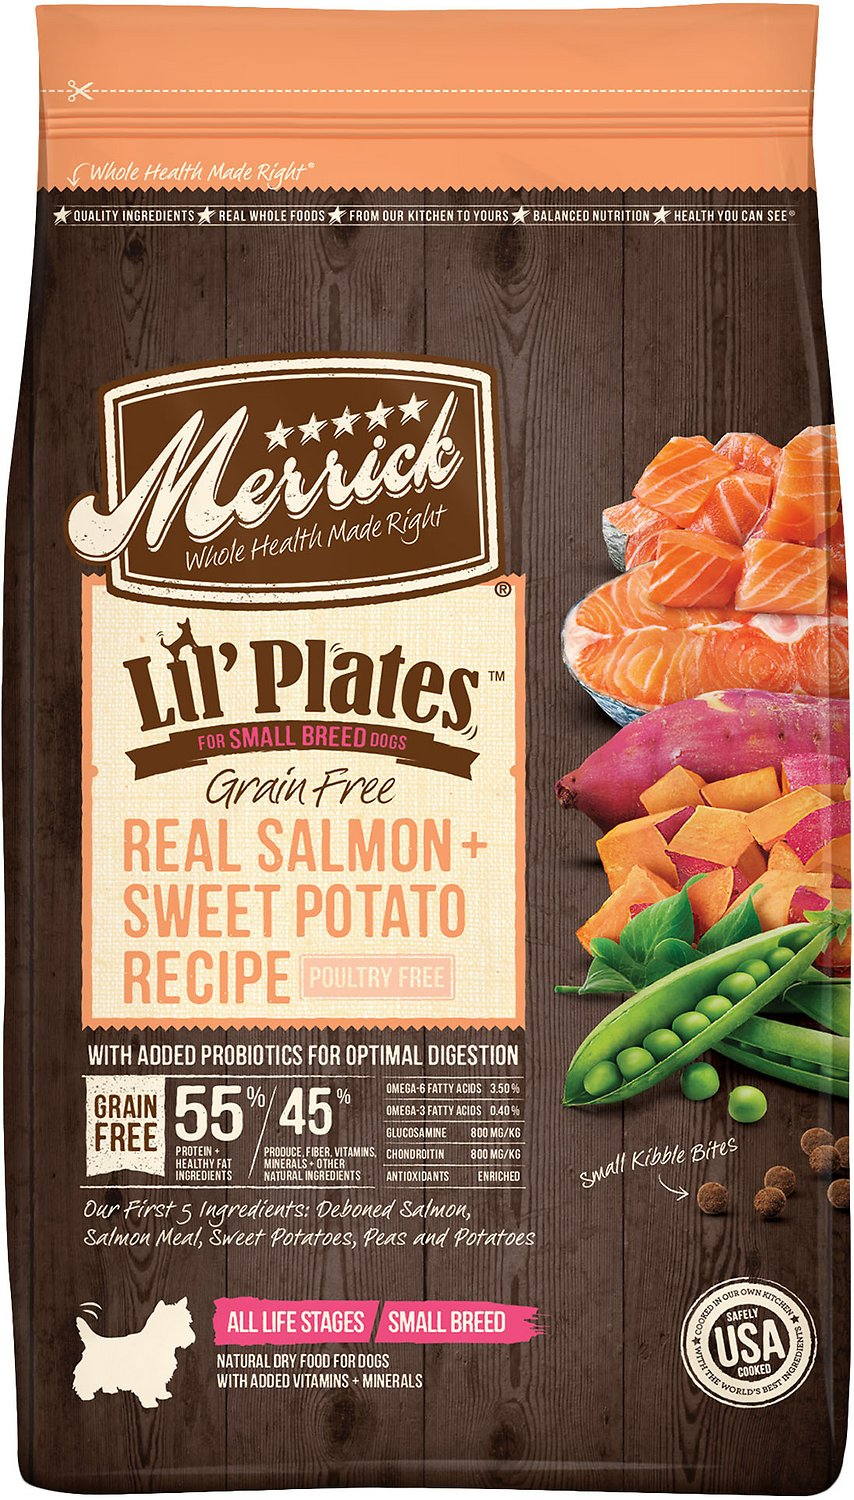 Merrick Lil' Plates Grain-Free Real Salmon & Sweet Potato Dry Dog Food